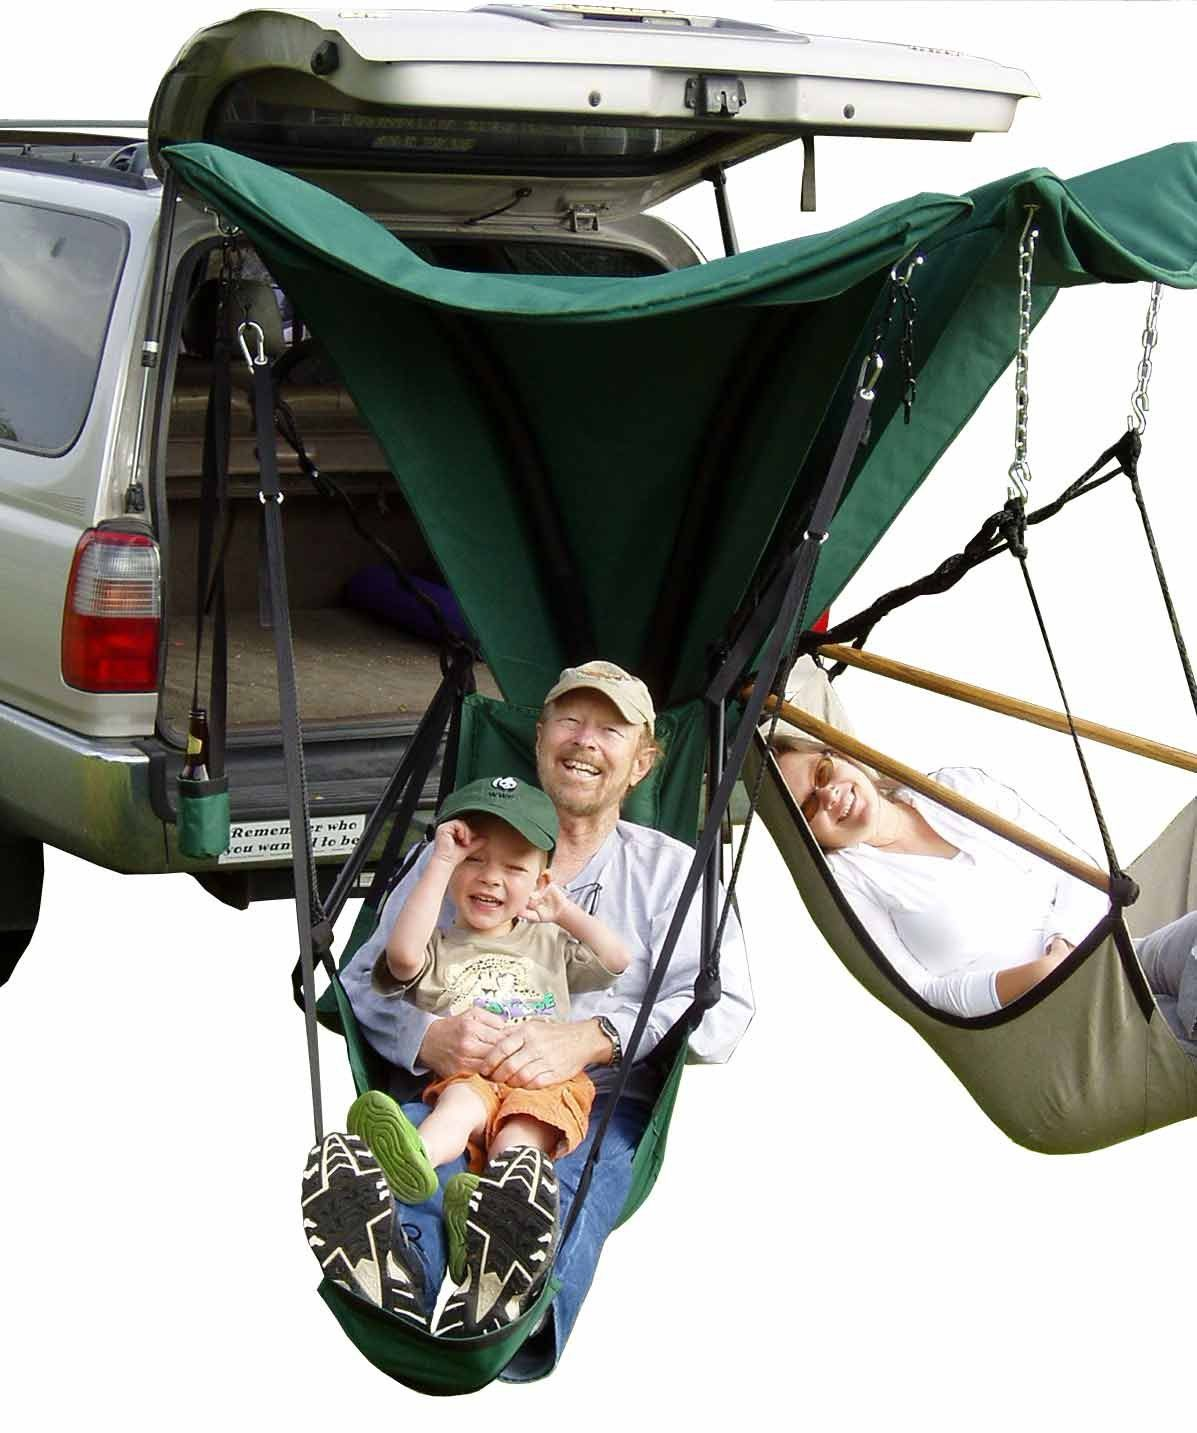 Green Eggs And Hammocks Hamx2go Trailer Hitch Hammock Chair Stand Best Camping Gear Camping Gear Hammock Chair Stand